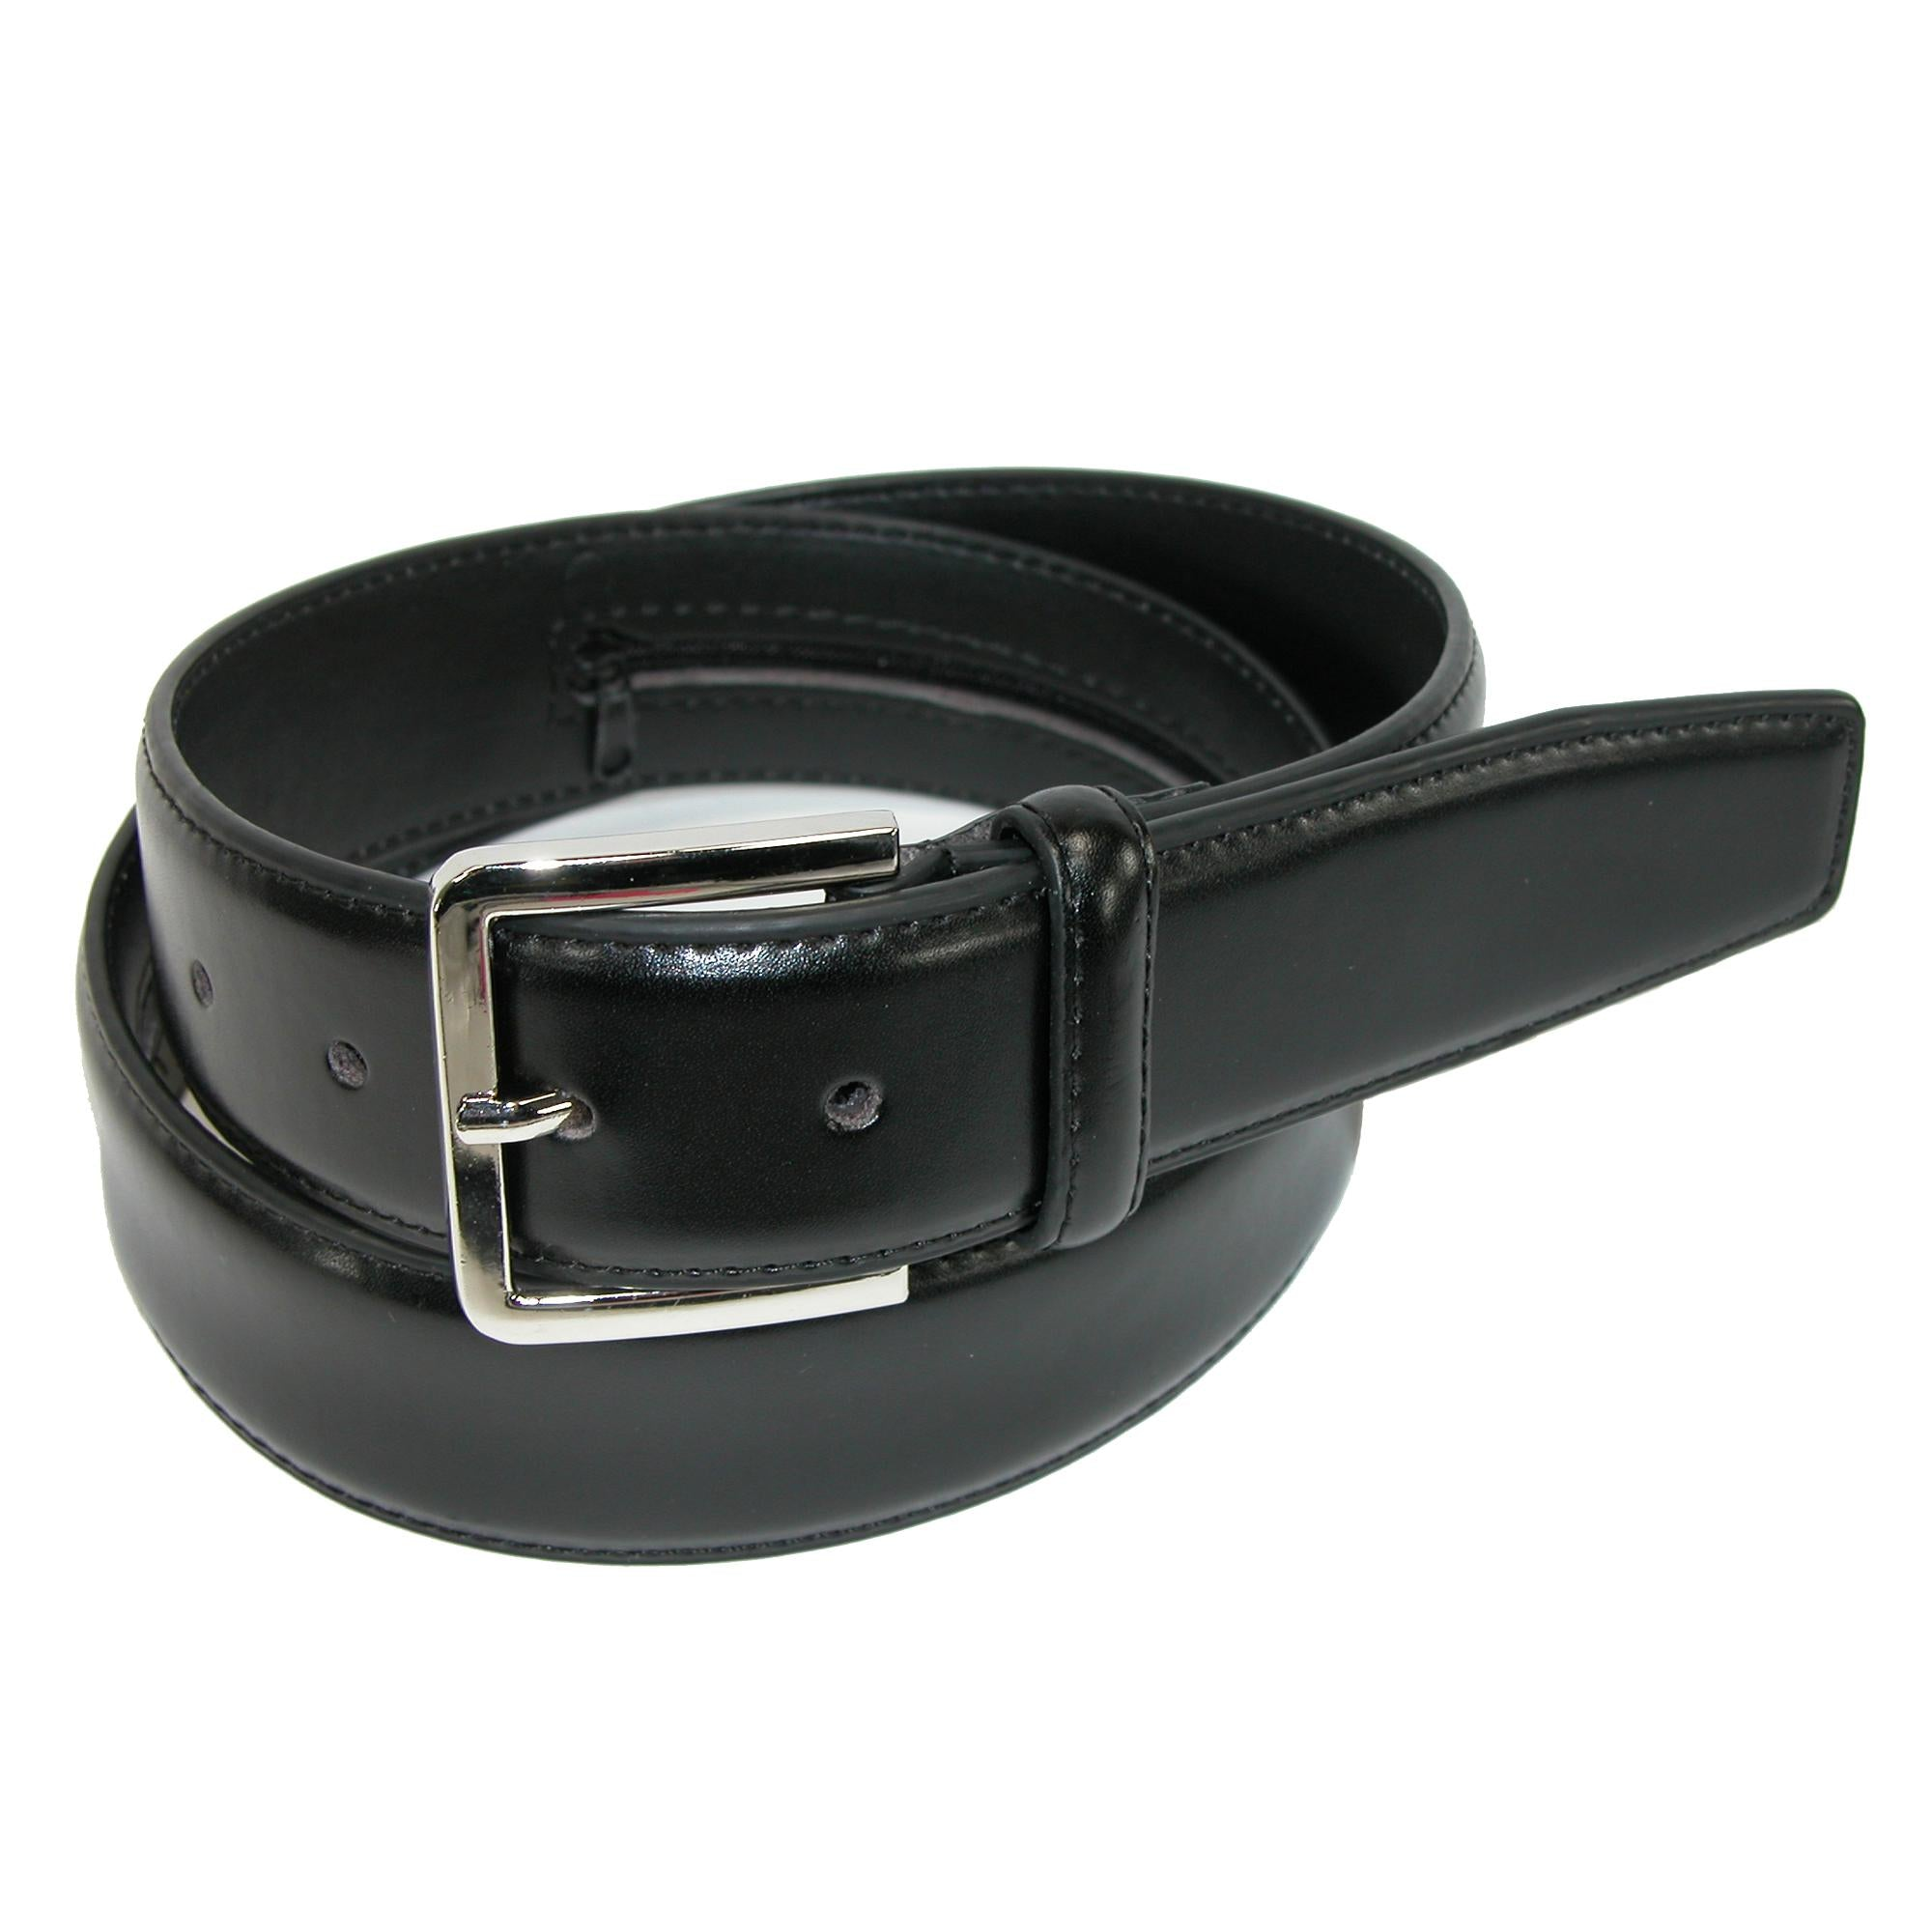 Leather Money Belt, Money Belt,Cheeky Ninjas